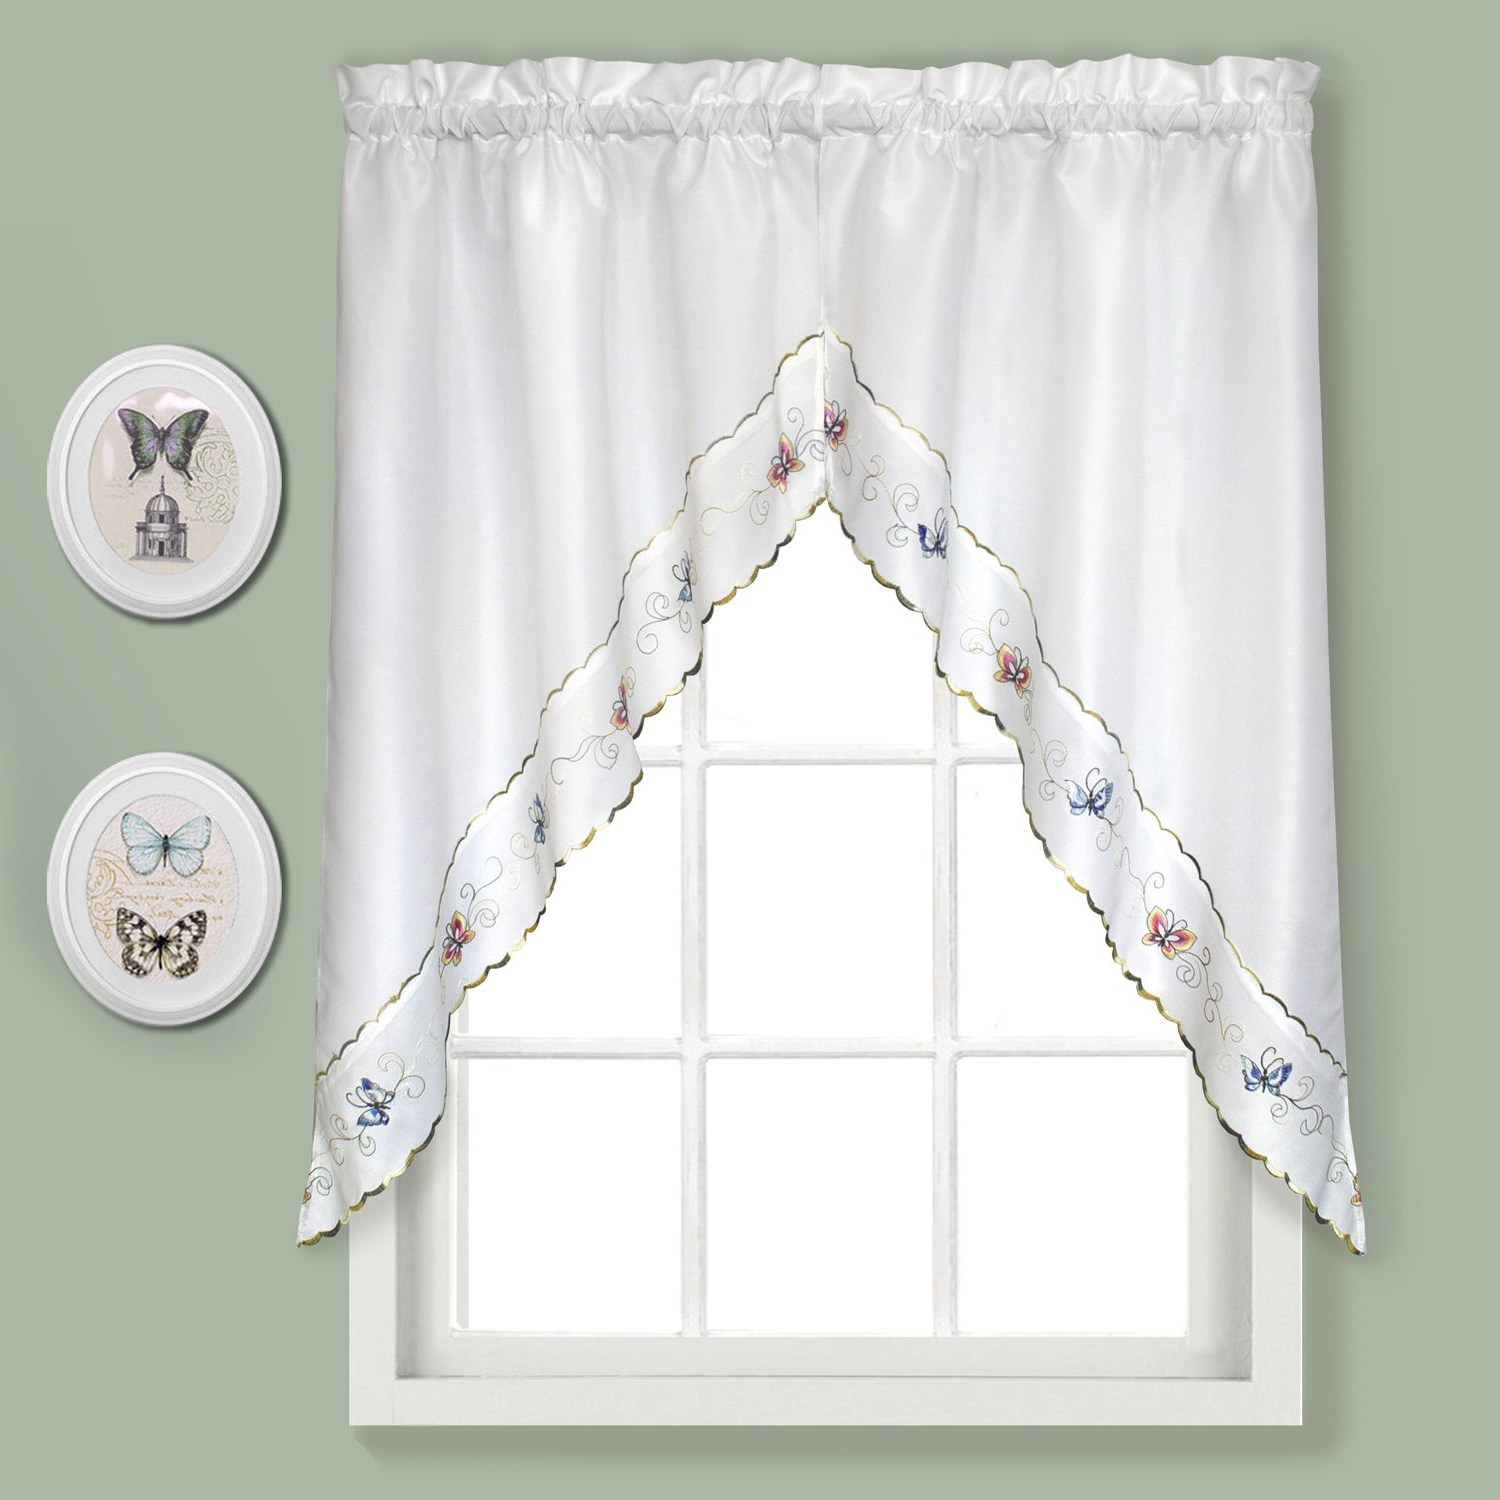 Newest Amazon: United Curtain Butterfly Embroidered Swags, 60 In Fluttering Butterfly White Embroidered Tier, Swag, Or Valance Kitchen Curtains (View 19 of 20)